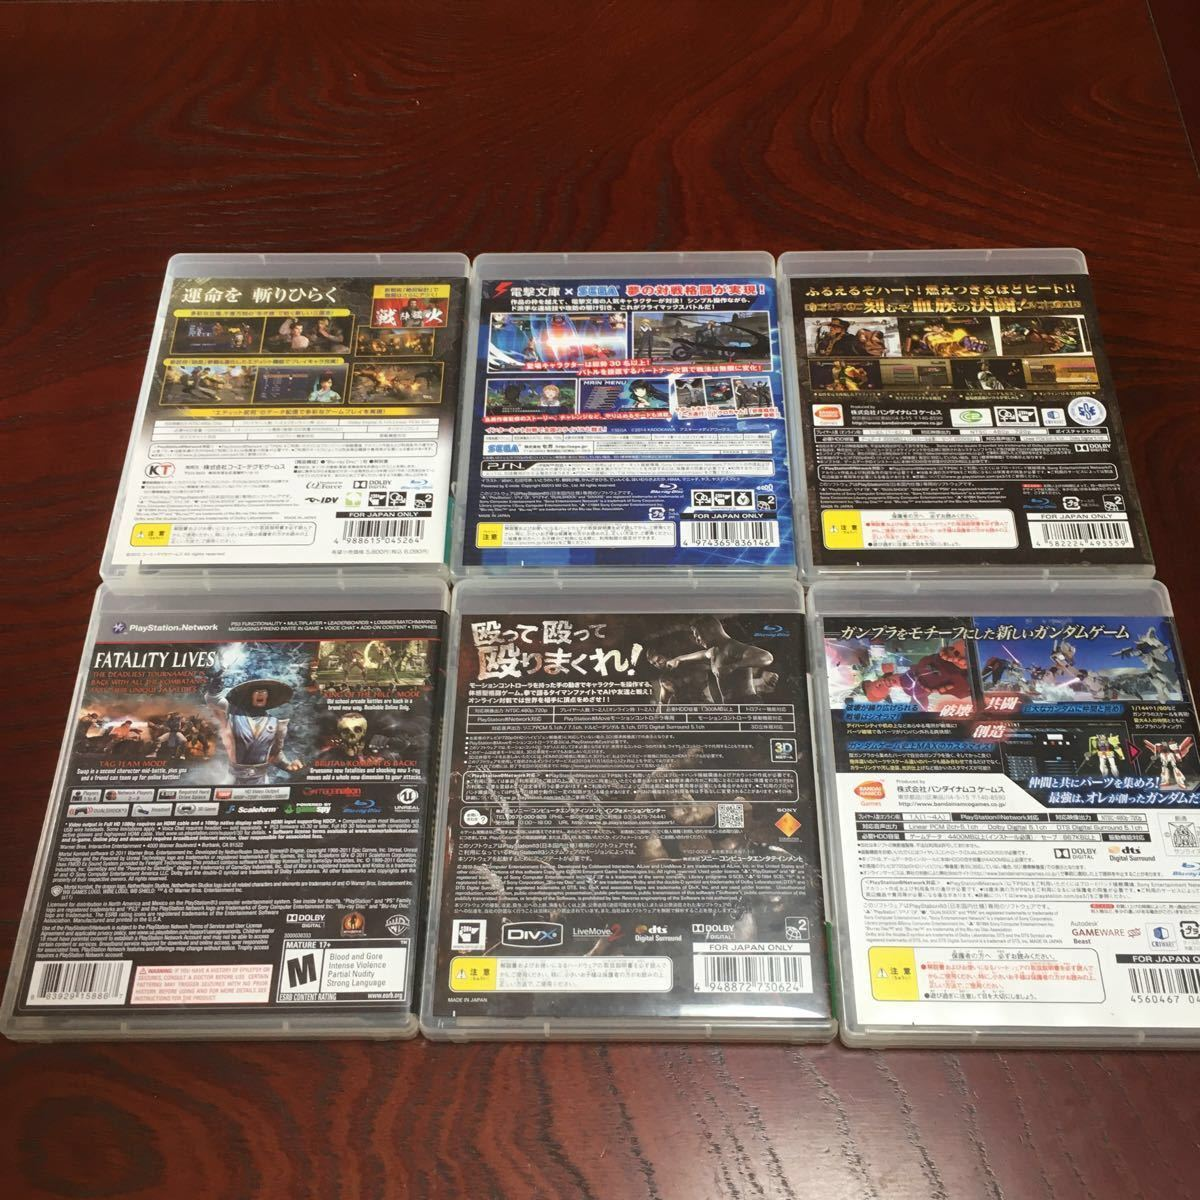 PS3 ソフト6本セット